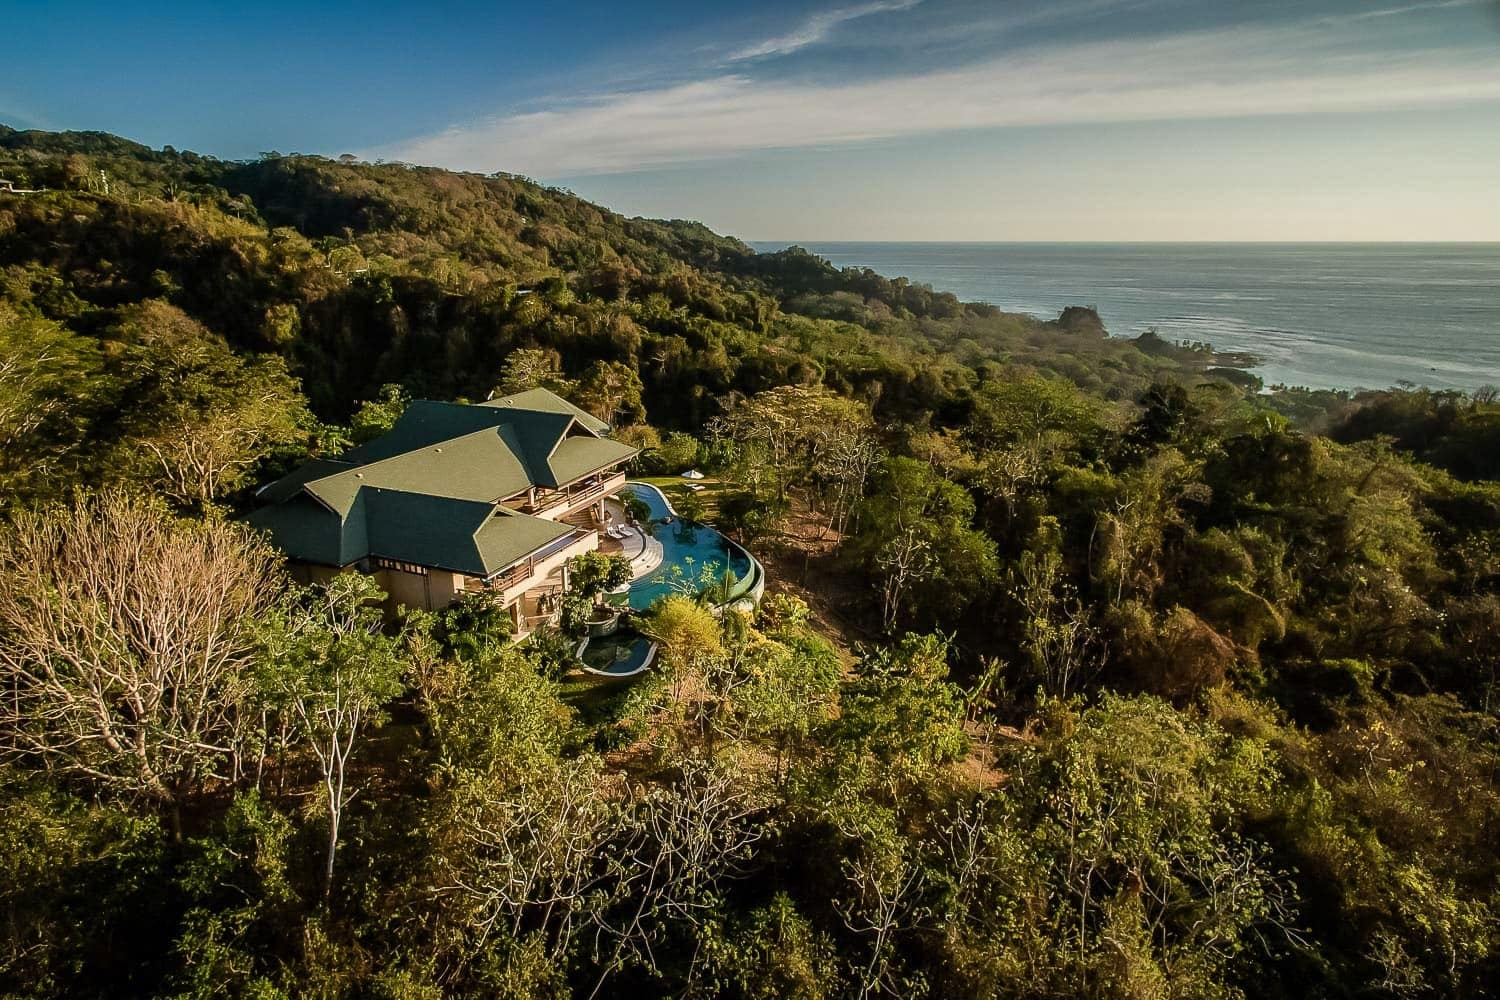 Arial view of Villa Nimbu nestled in rainforest with the Pacific Ocean in the background.